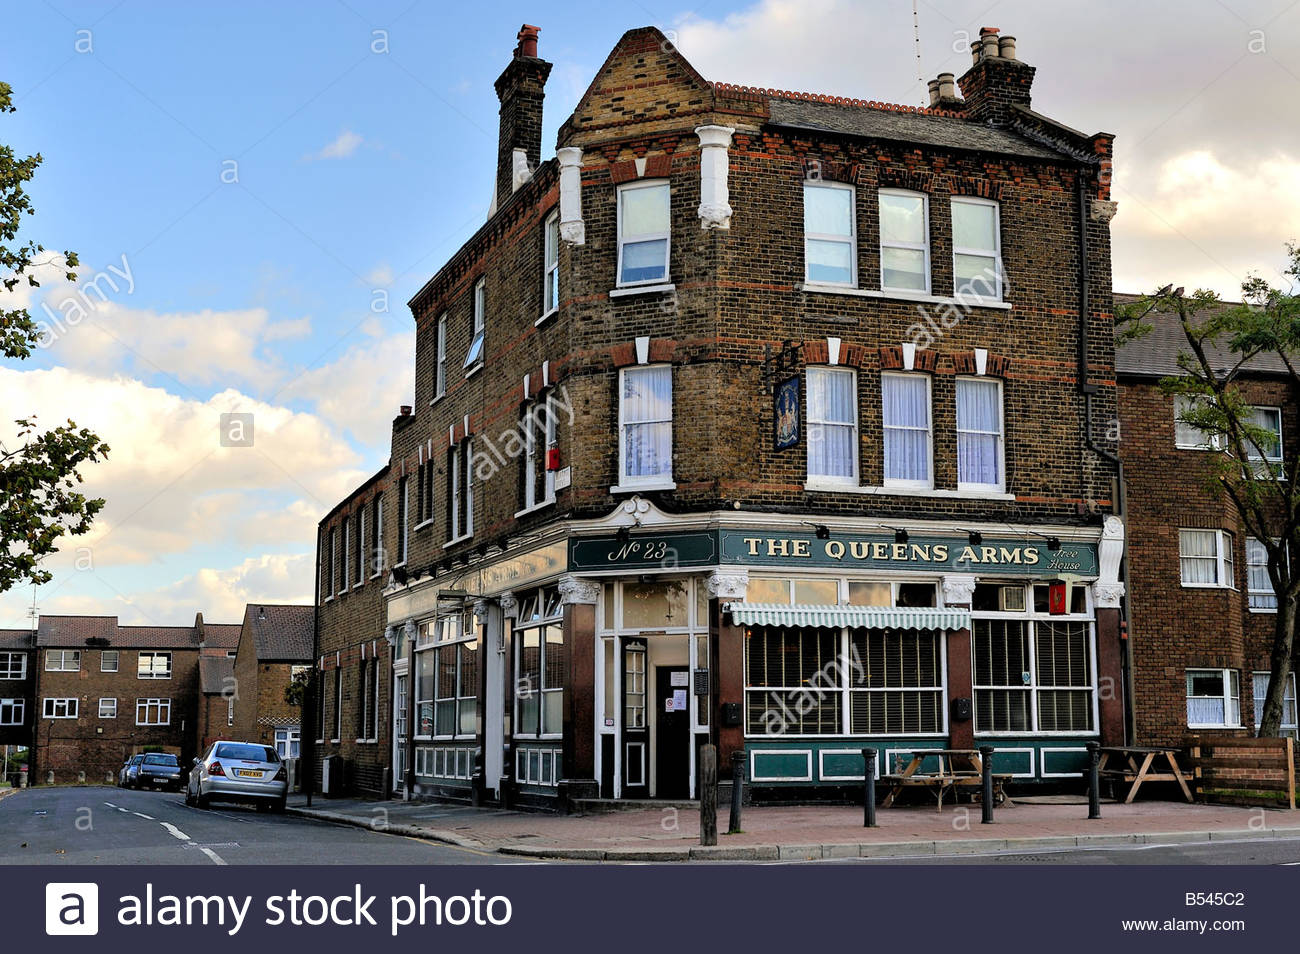 A typical London pub - Stock Image